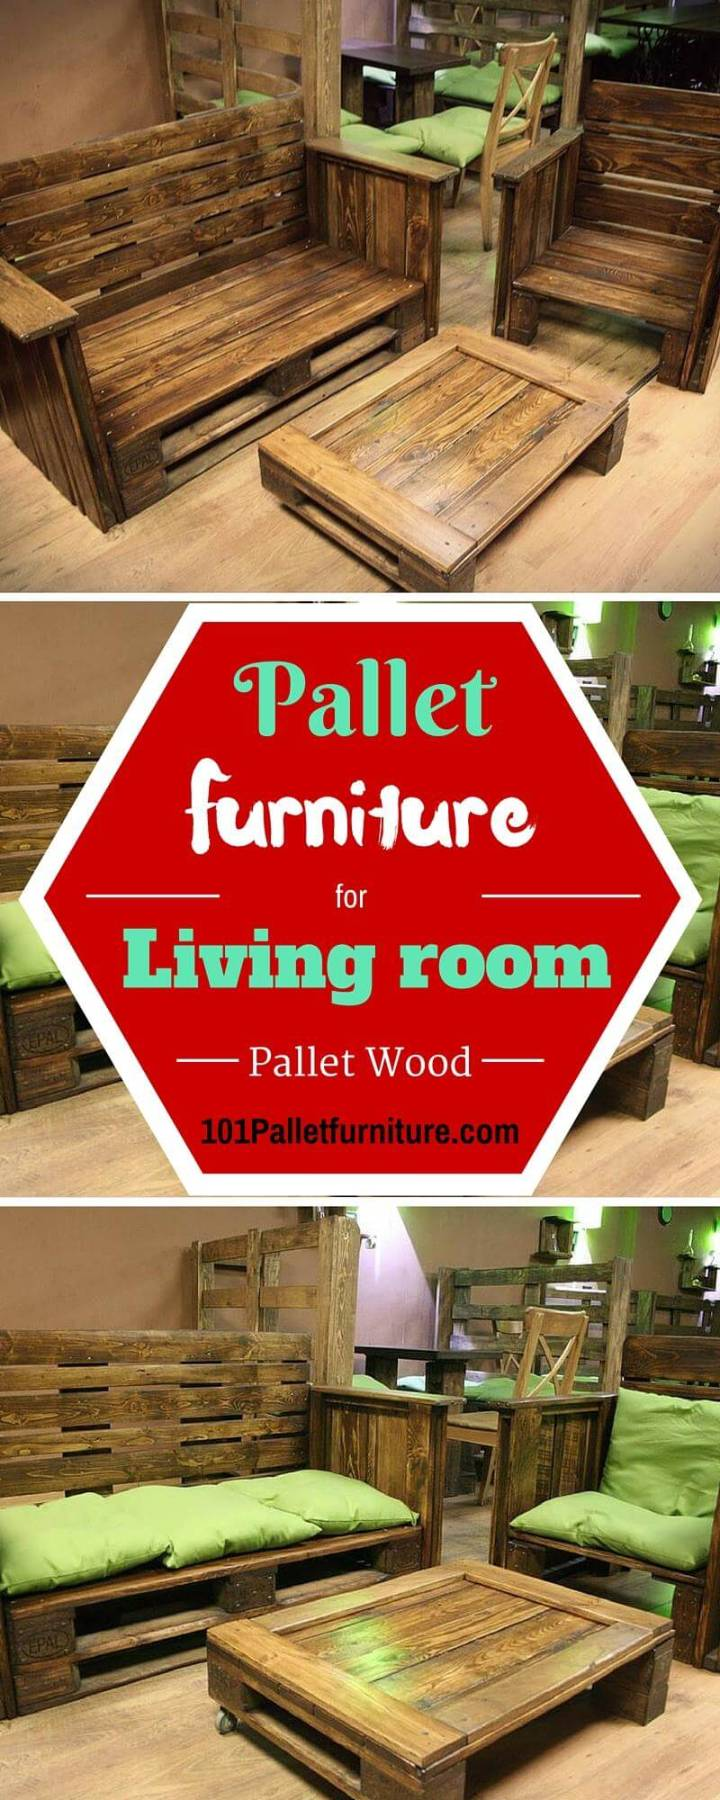 DIY Pallet Furniture for Living Room